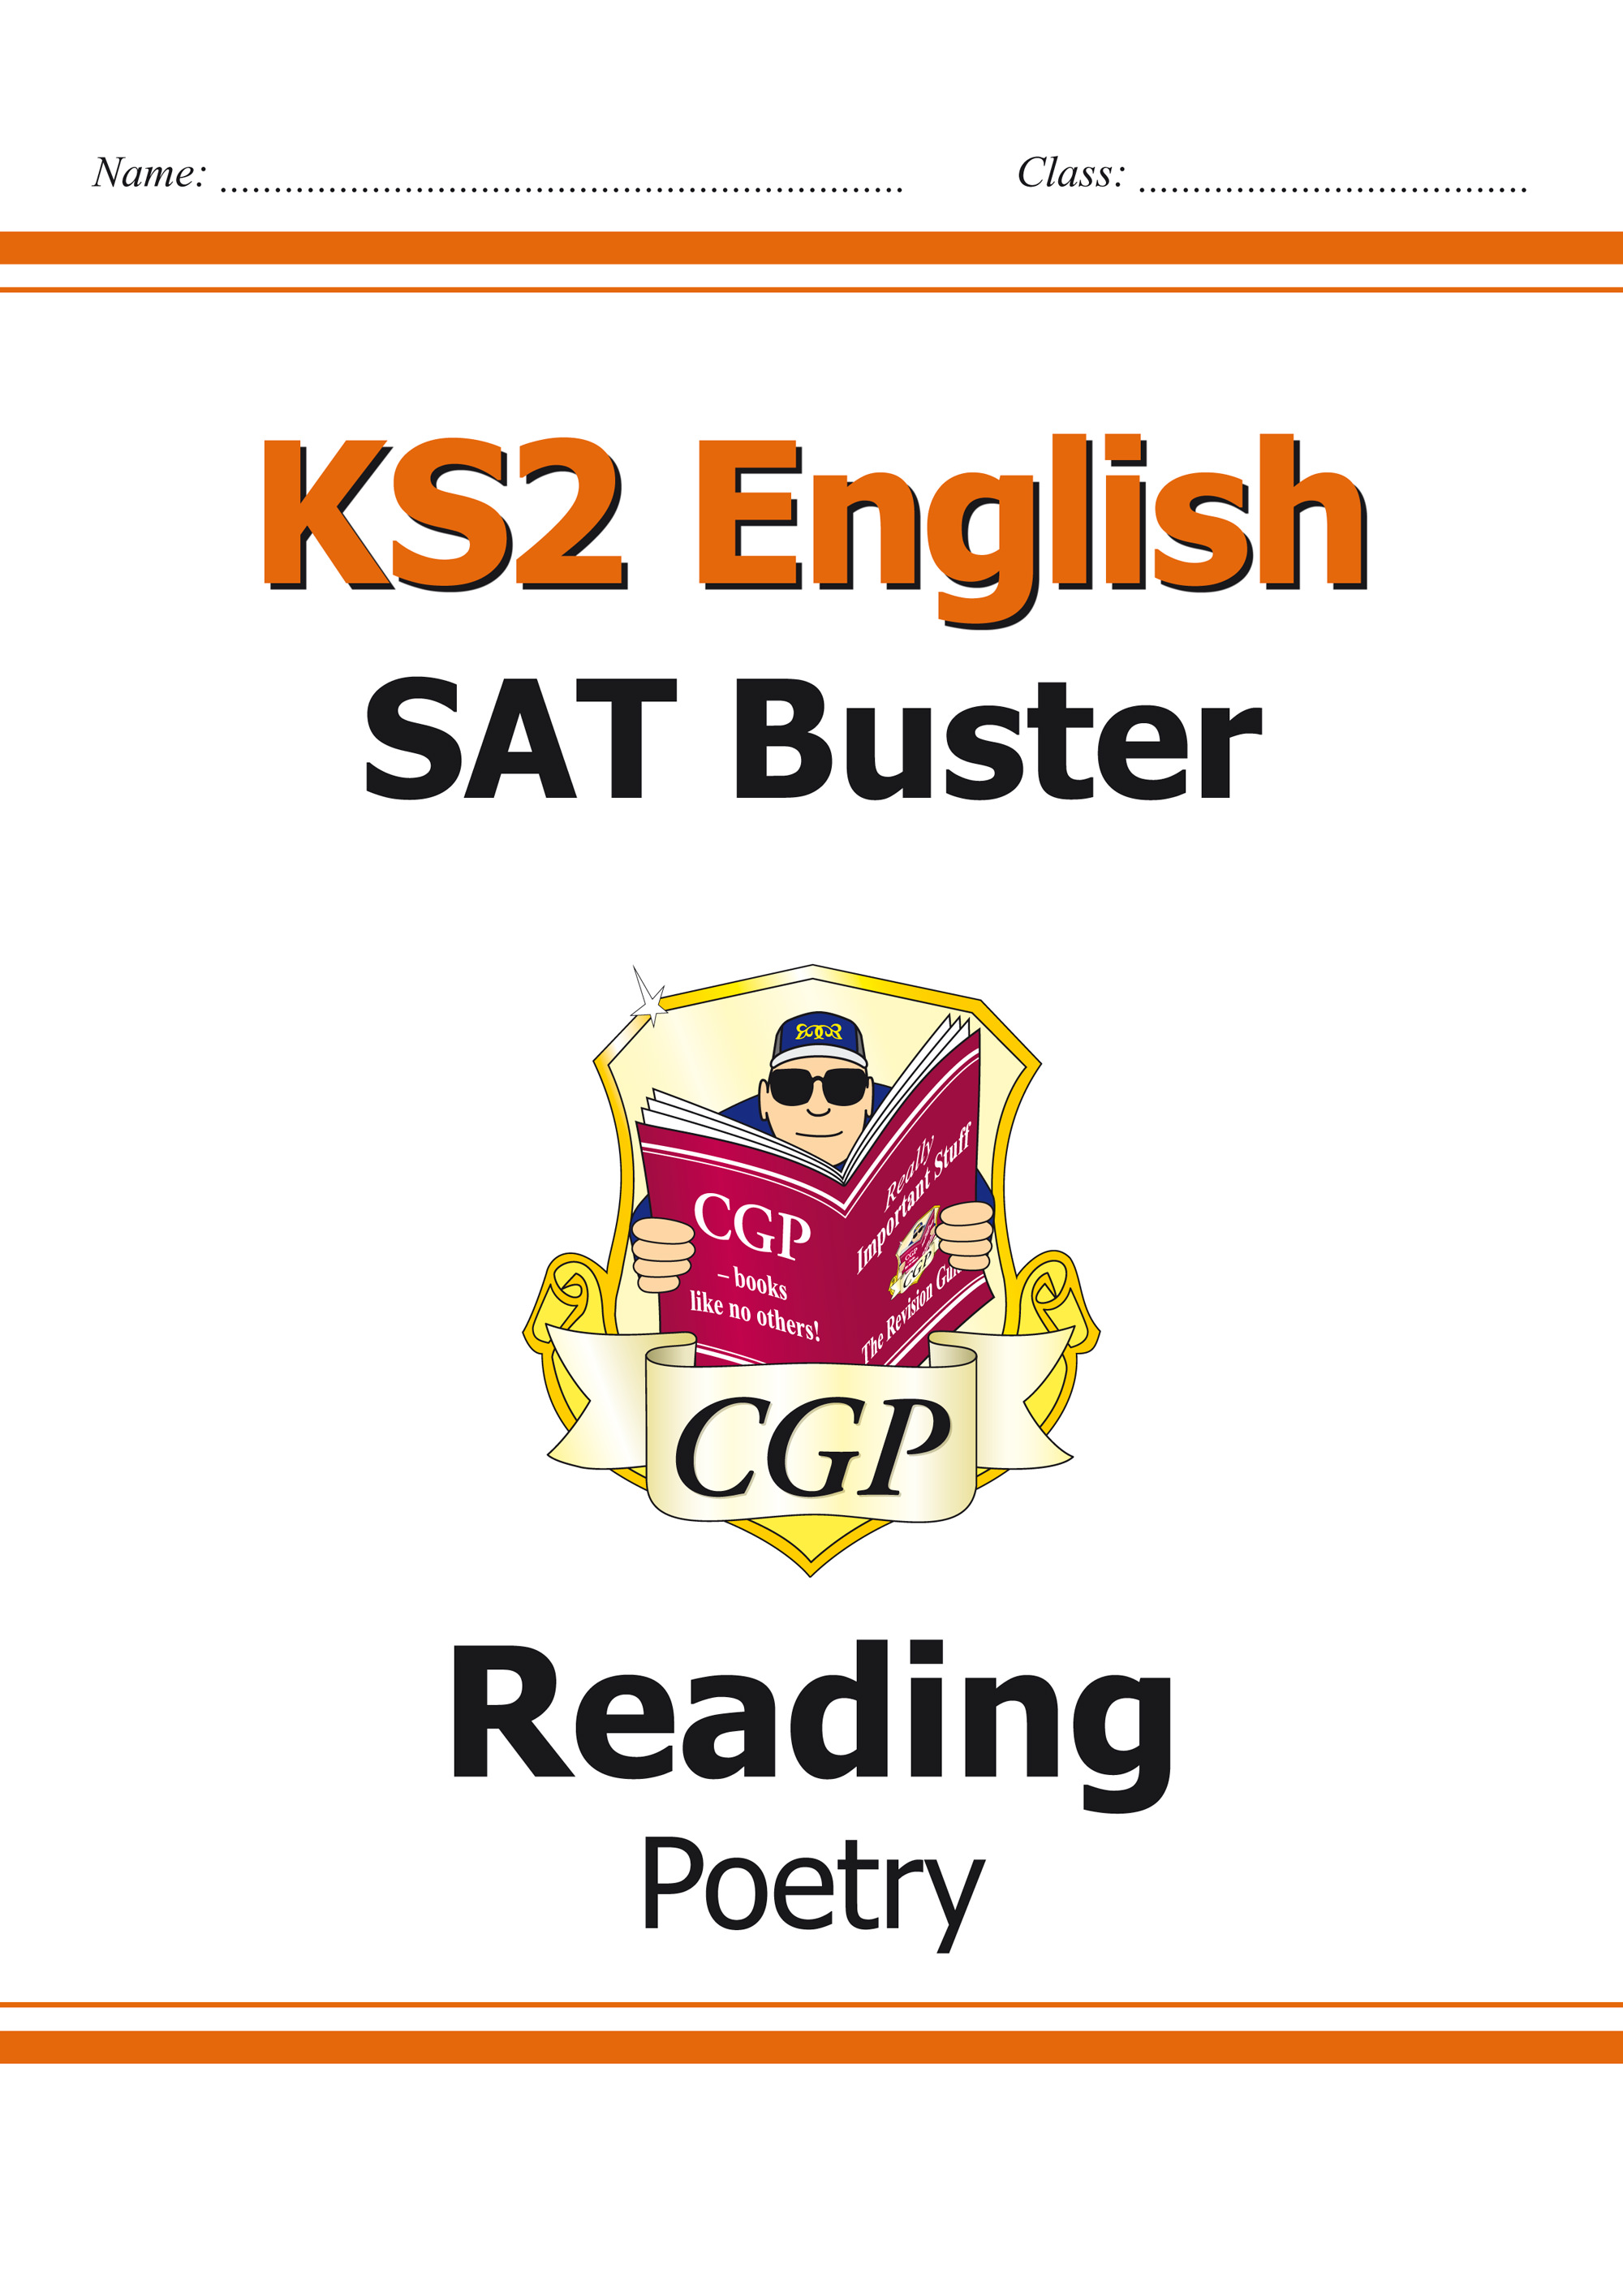 E6FRP21 - KS2 English Reading SAT Buster: Poetry Book 1 (for tests in 2019)